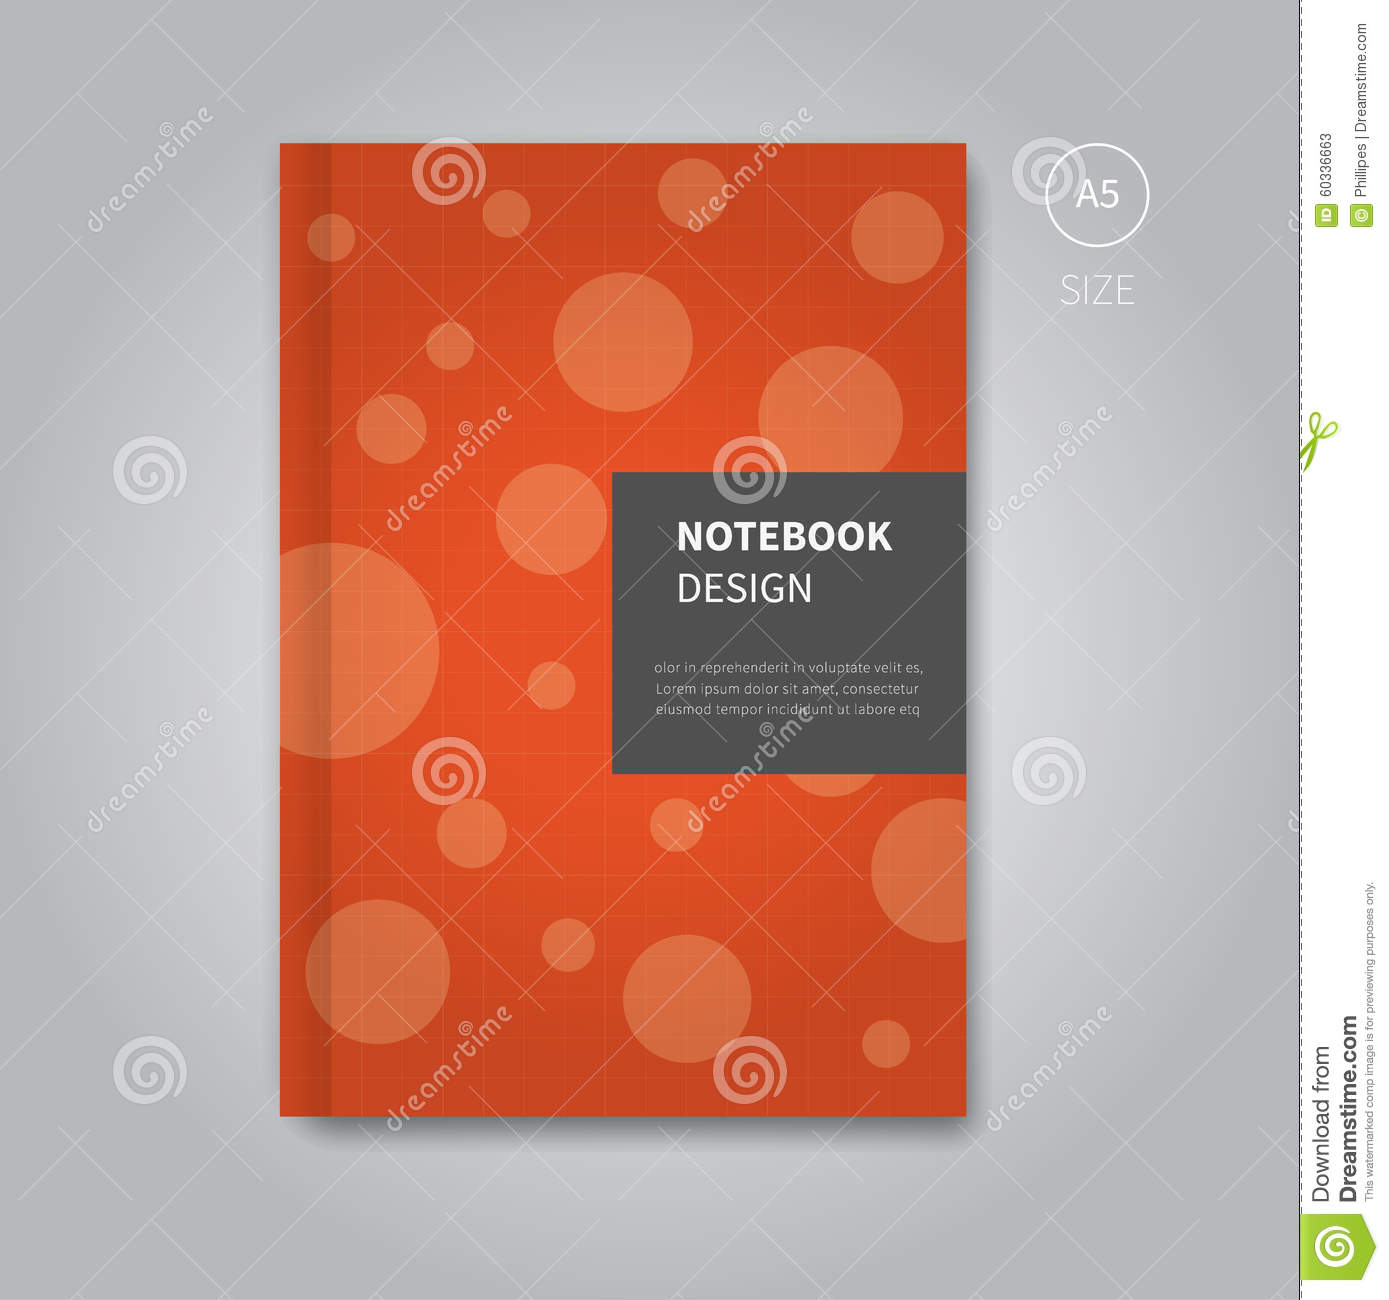 School Notebook Cover Design : Notebook cover design template stock vector image